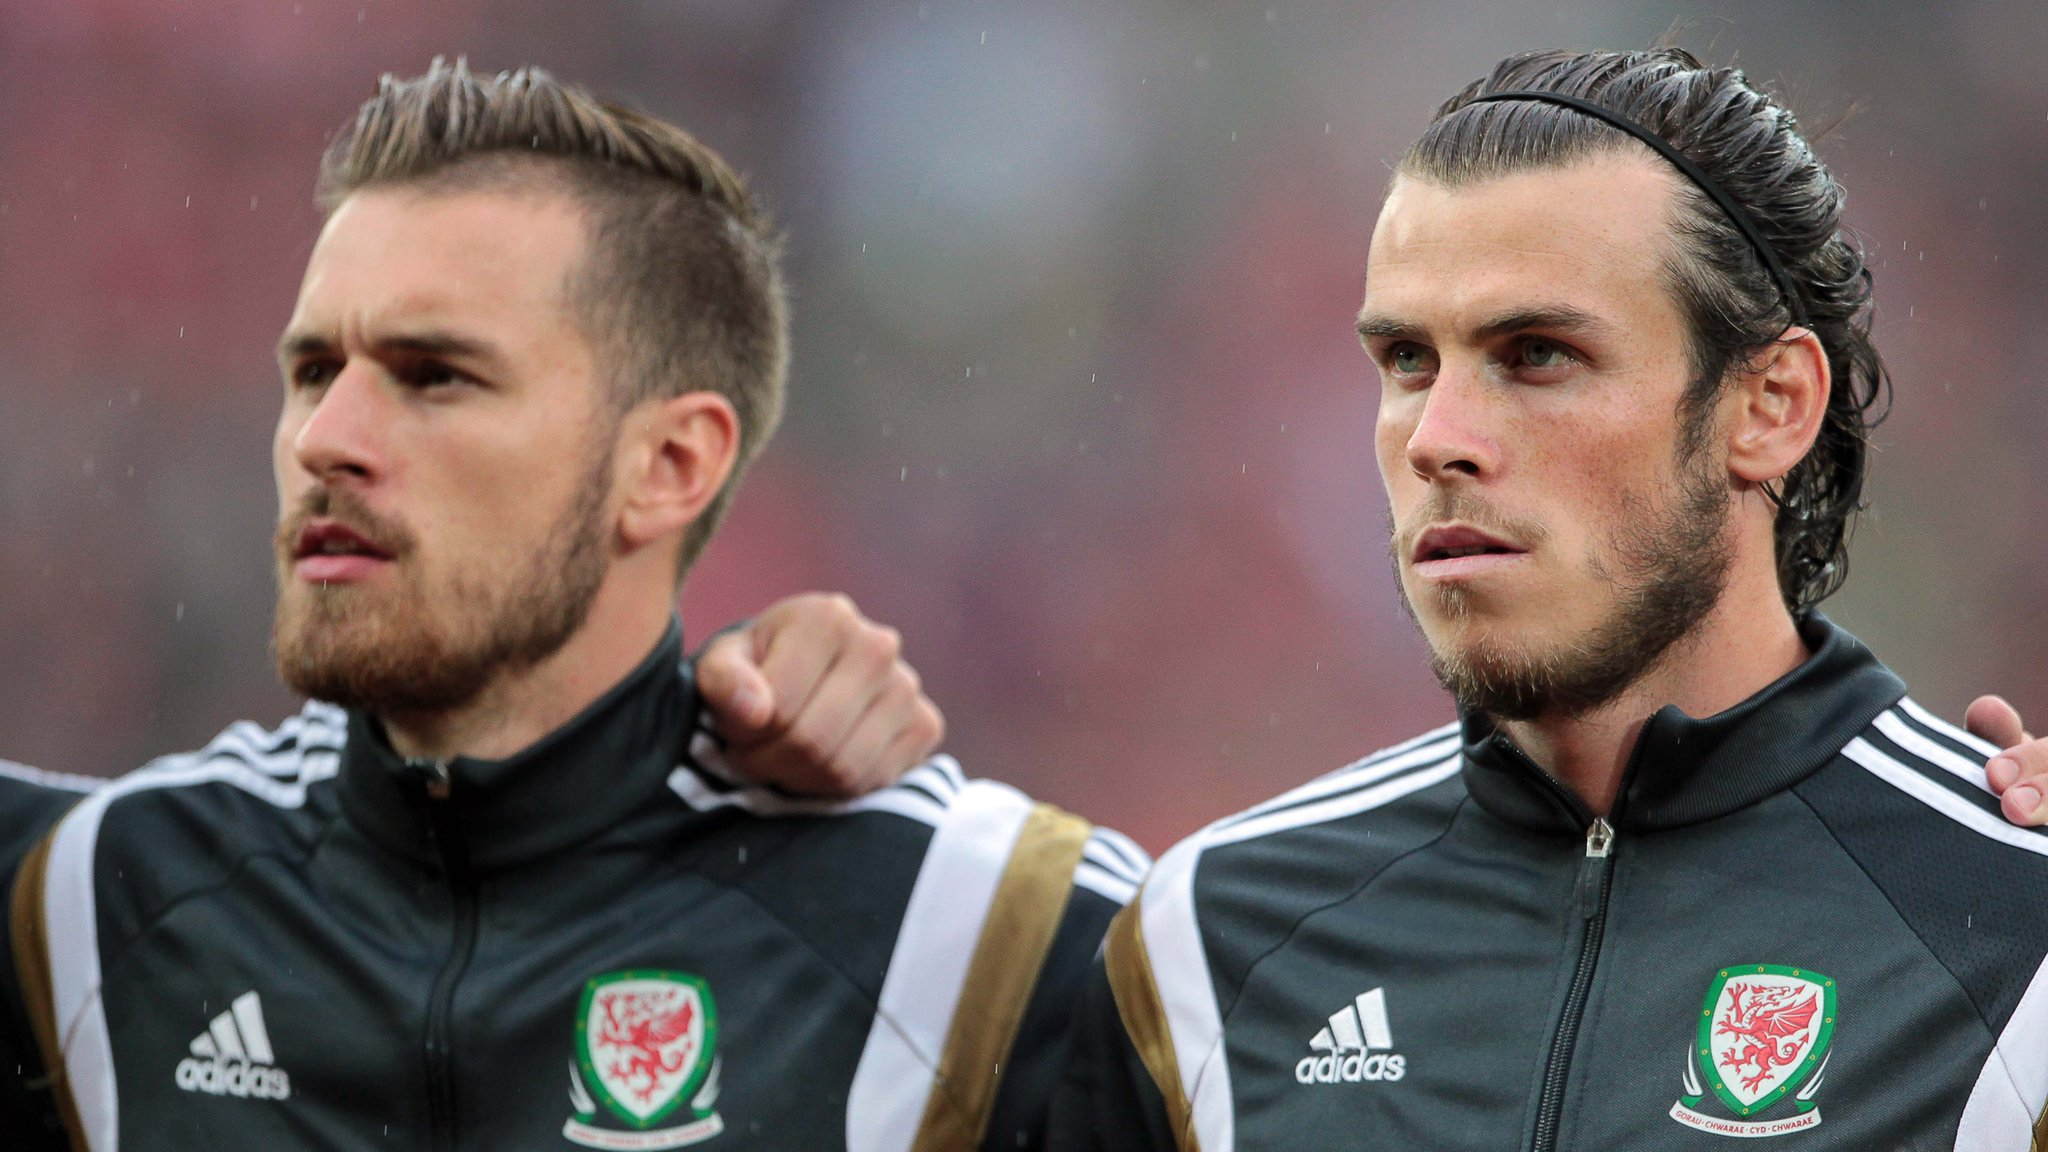 Wales must prove worth without Gareth Bale and Aaron Ramsey, says boss Giggs